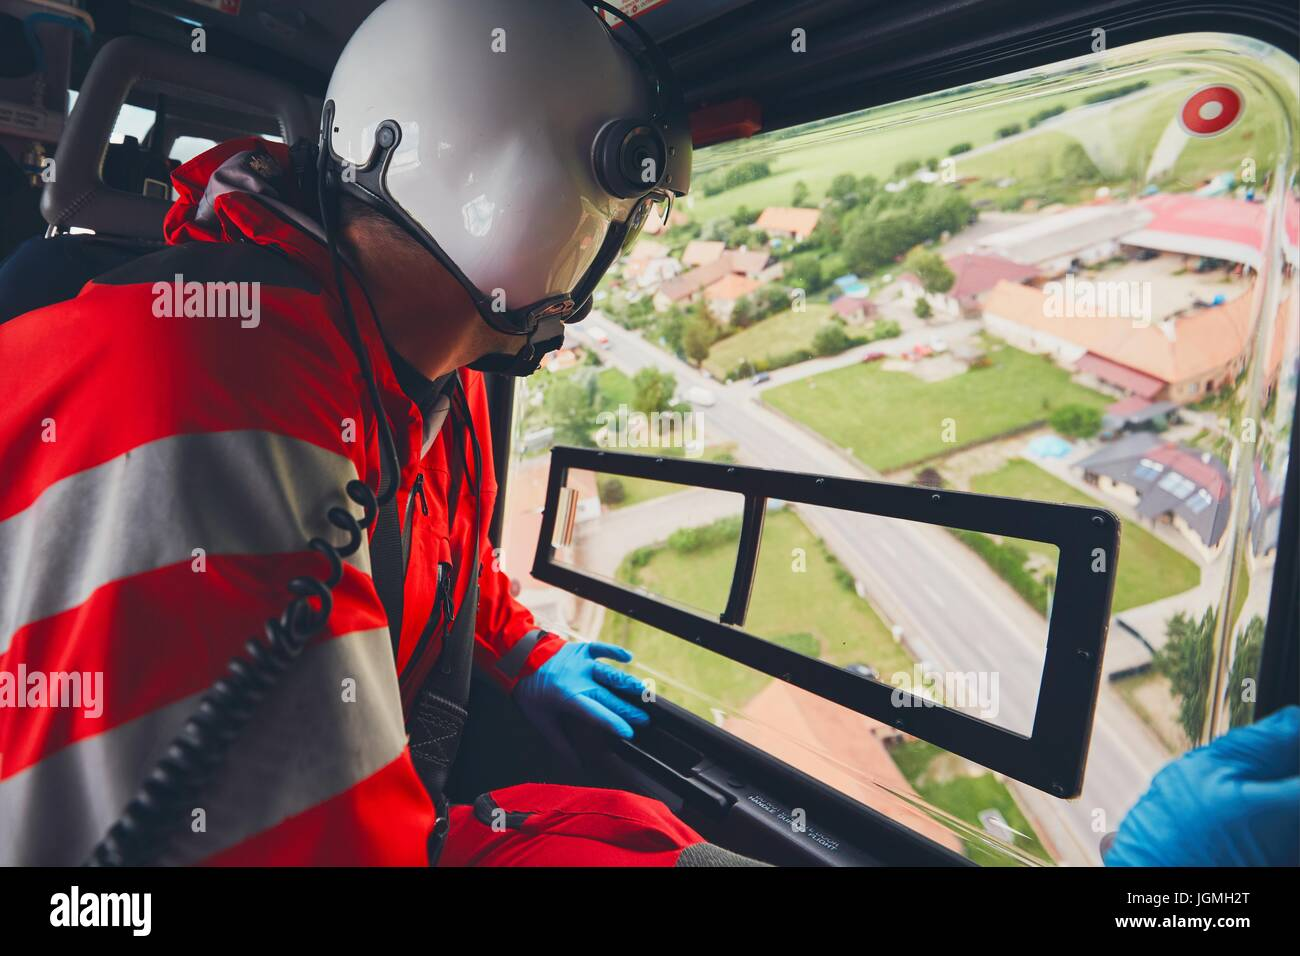 Alarm for helicopter emergency medical service. Doctor looking from window on the road. Theme rescue, help and hope. - Stock Image